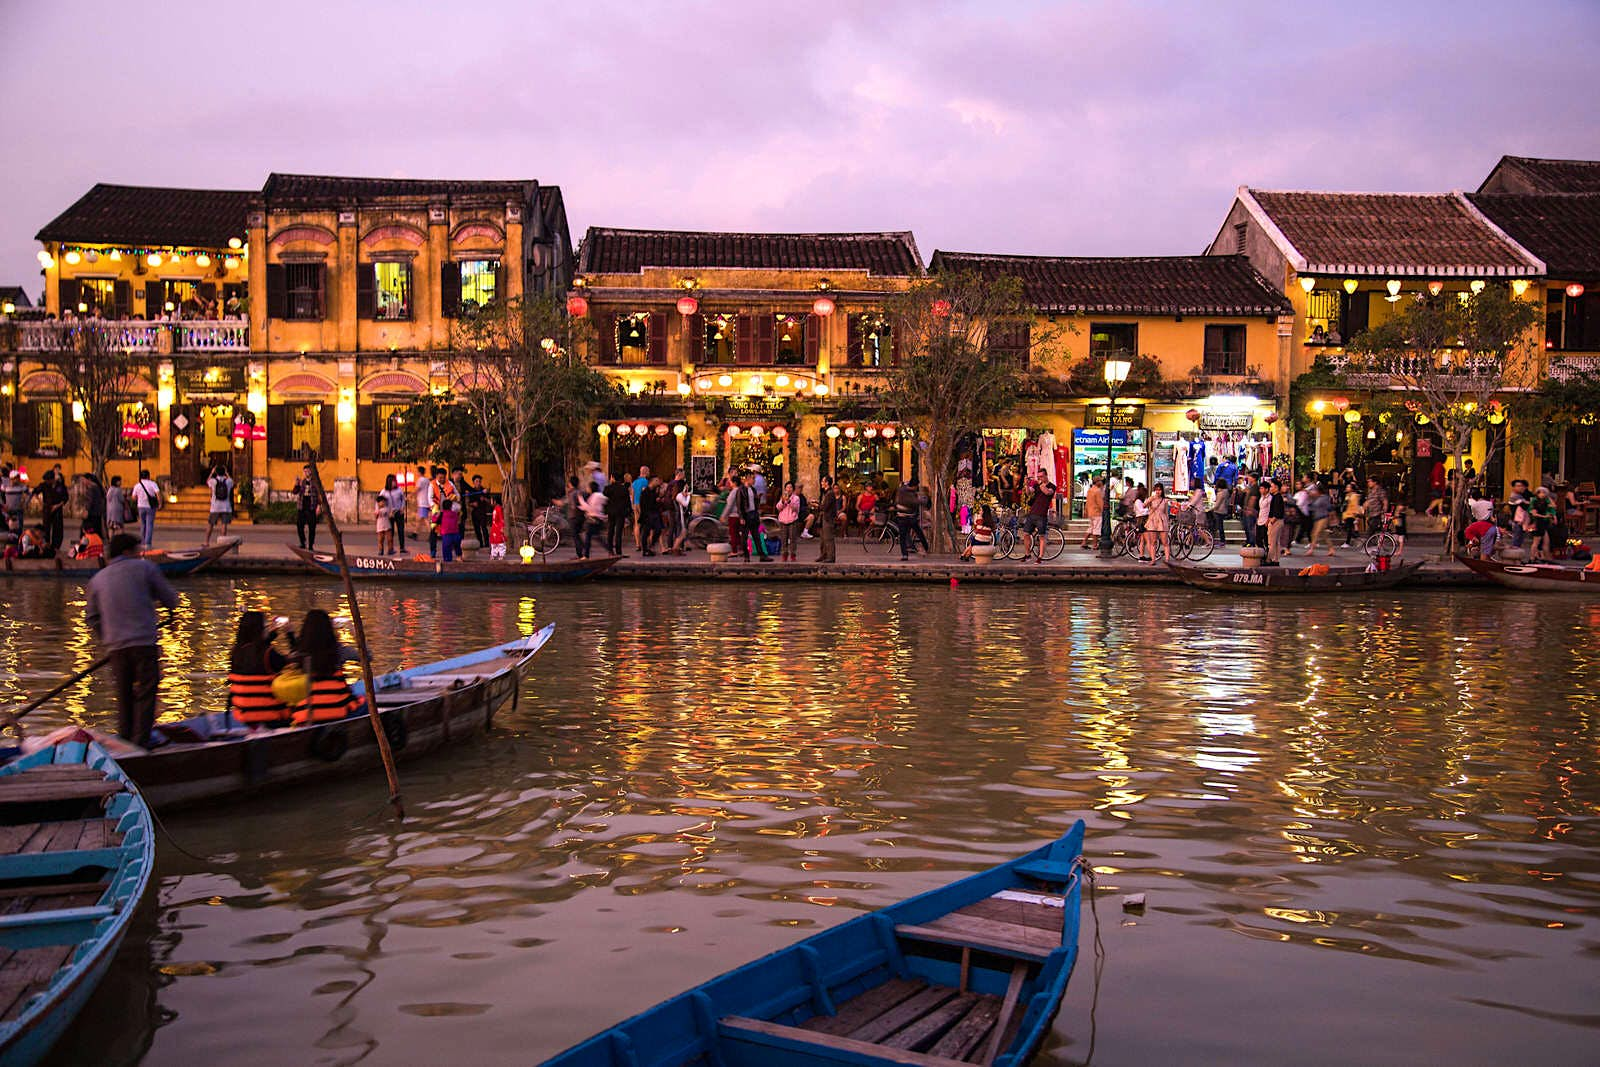 The Old Town of Hoi An viewed at dusk as lights twinkle off the river